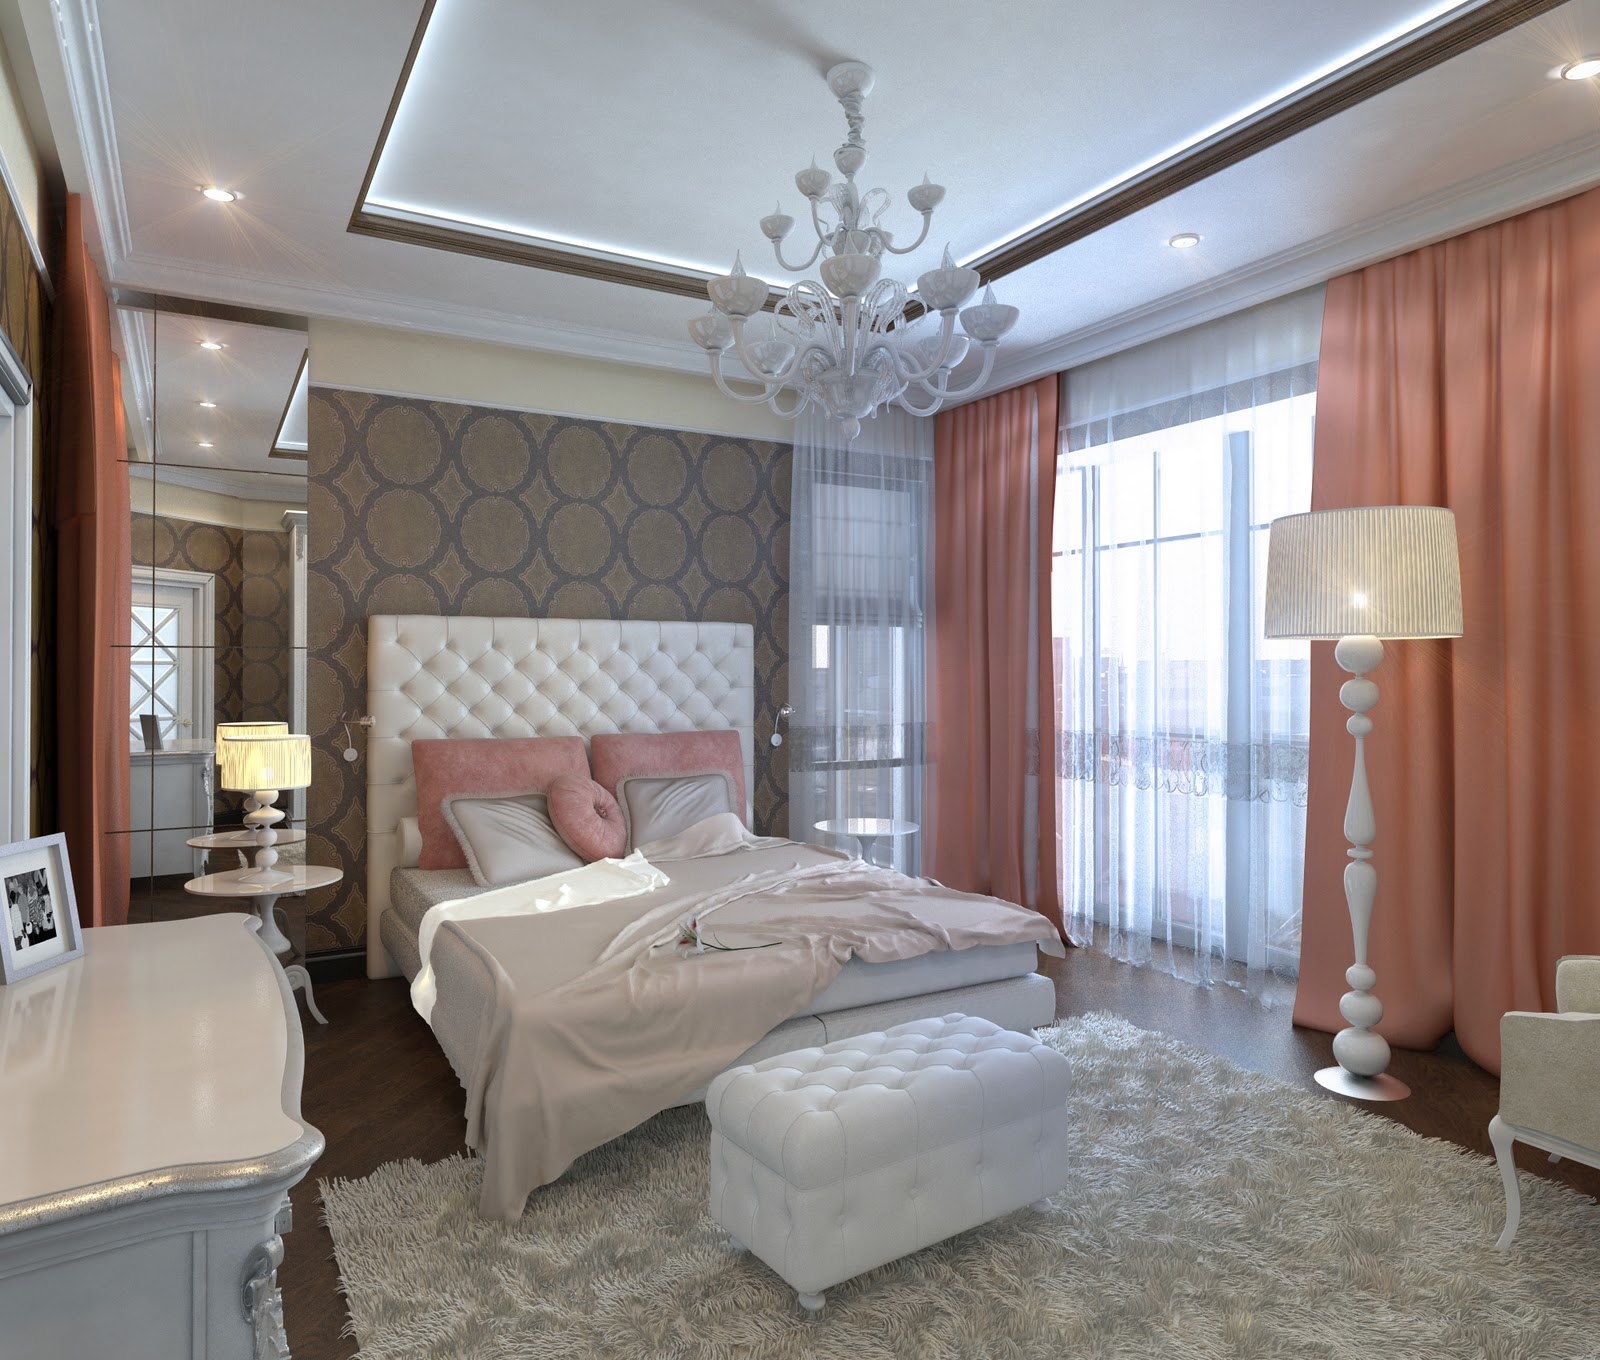 Art Room Bedroom: 3d Design: Bedroom Art Deco